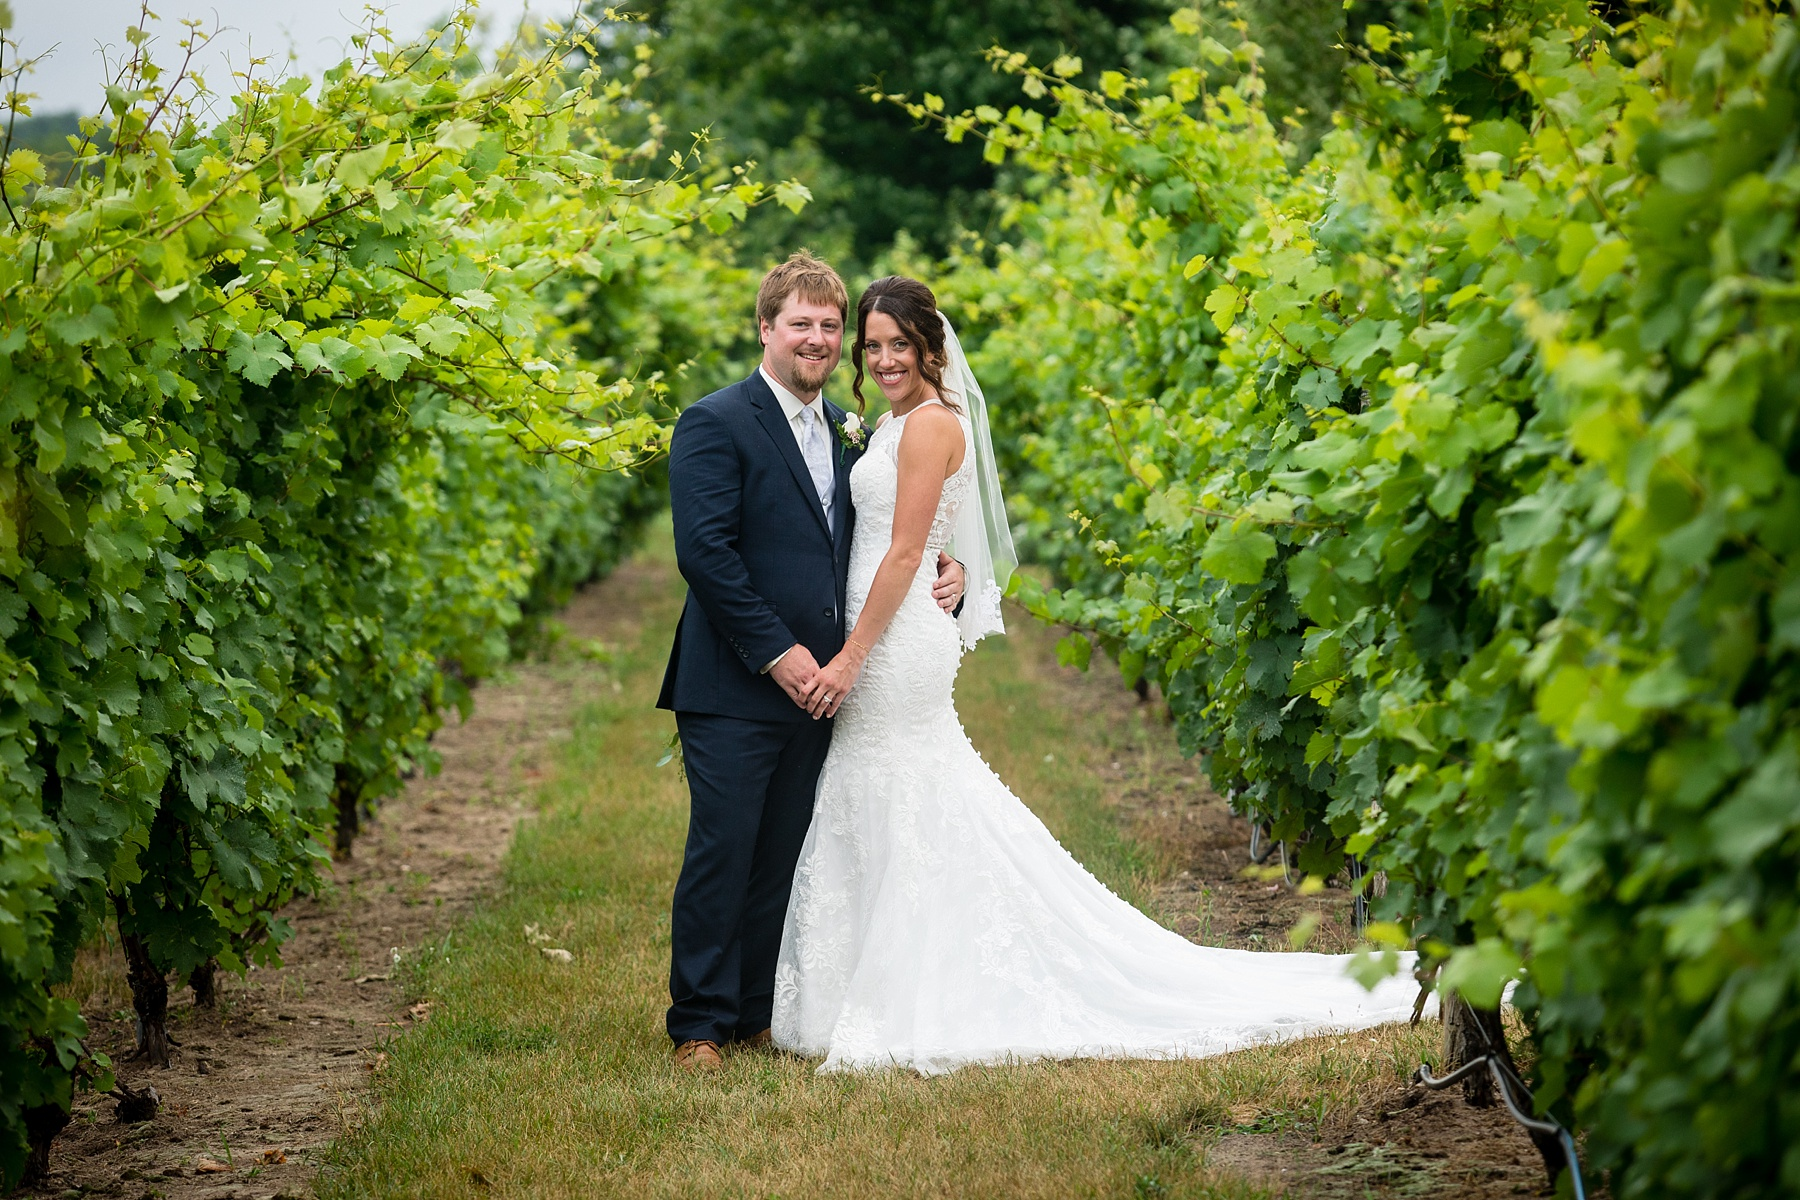 Brandon_Shafer_Photography_Elizabeth_Scott_Traverse_City_Wedding_0043.jpg